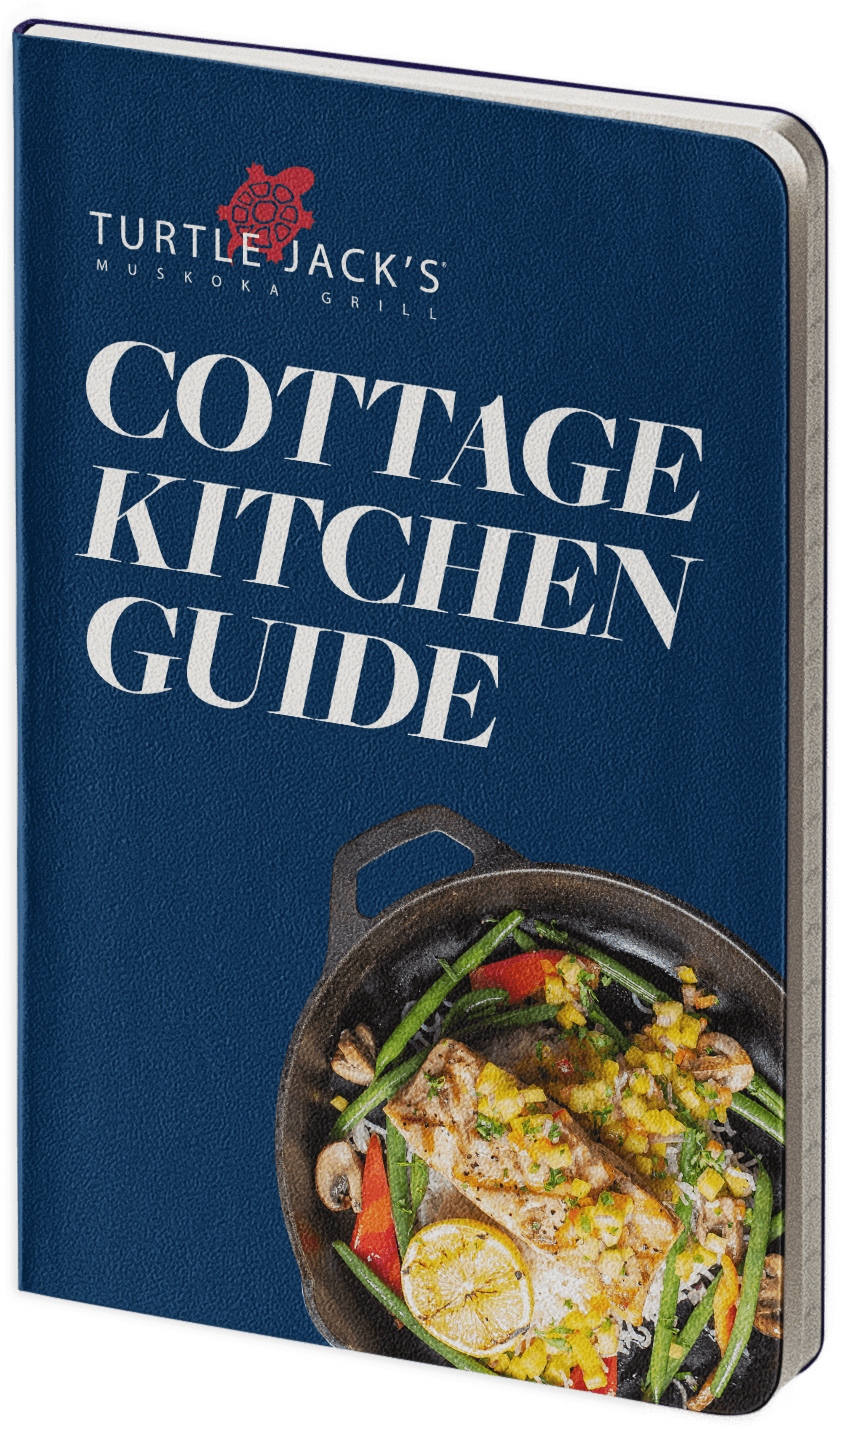 Cottage Kitchen Guide